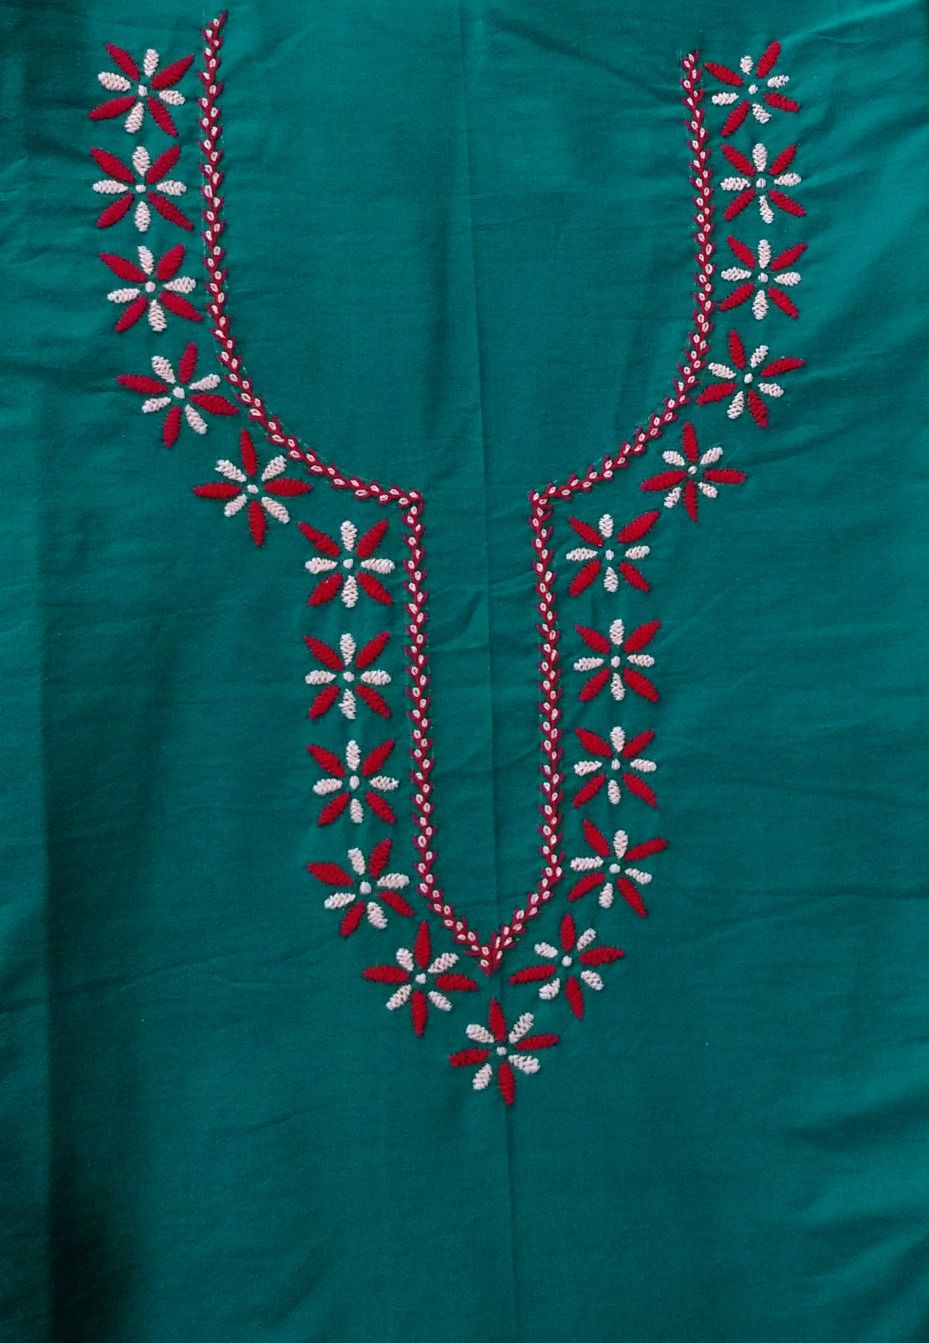 Neck Pattern Embroidery Blouse Designs Embroidery Neck Designs Hand Work Blouse Design,Creative Design Workspace